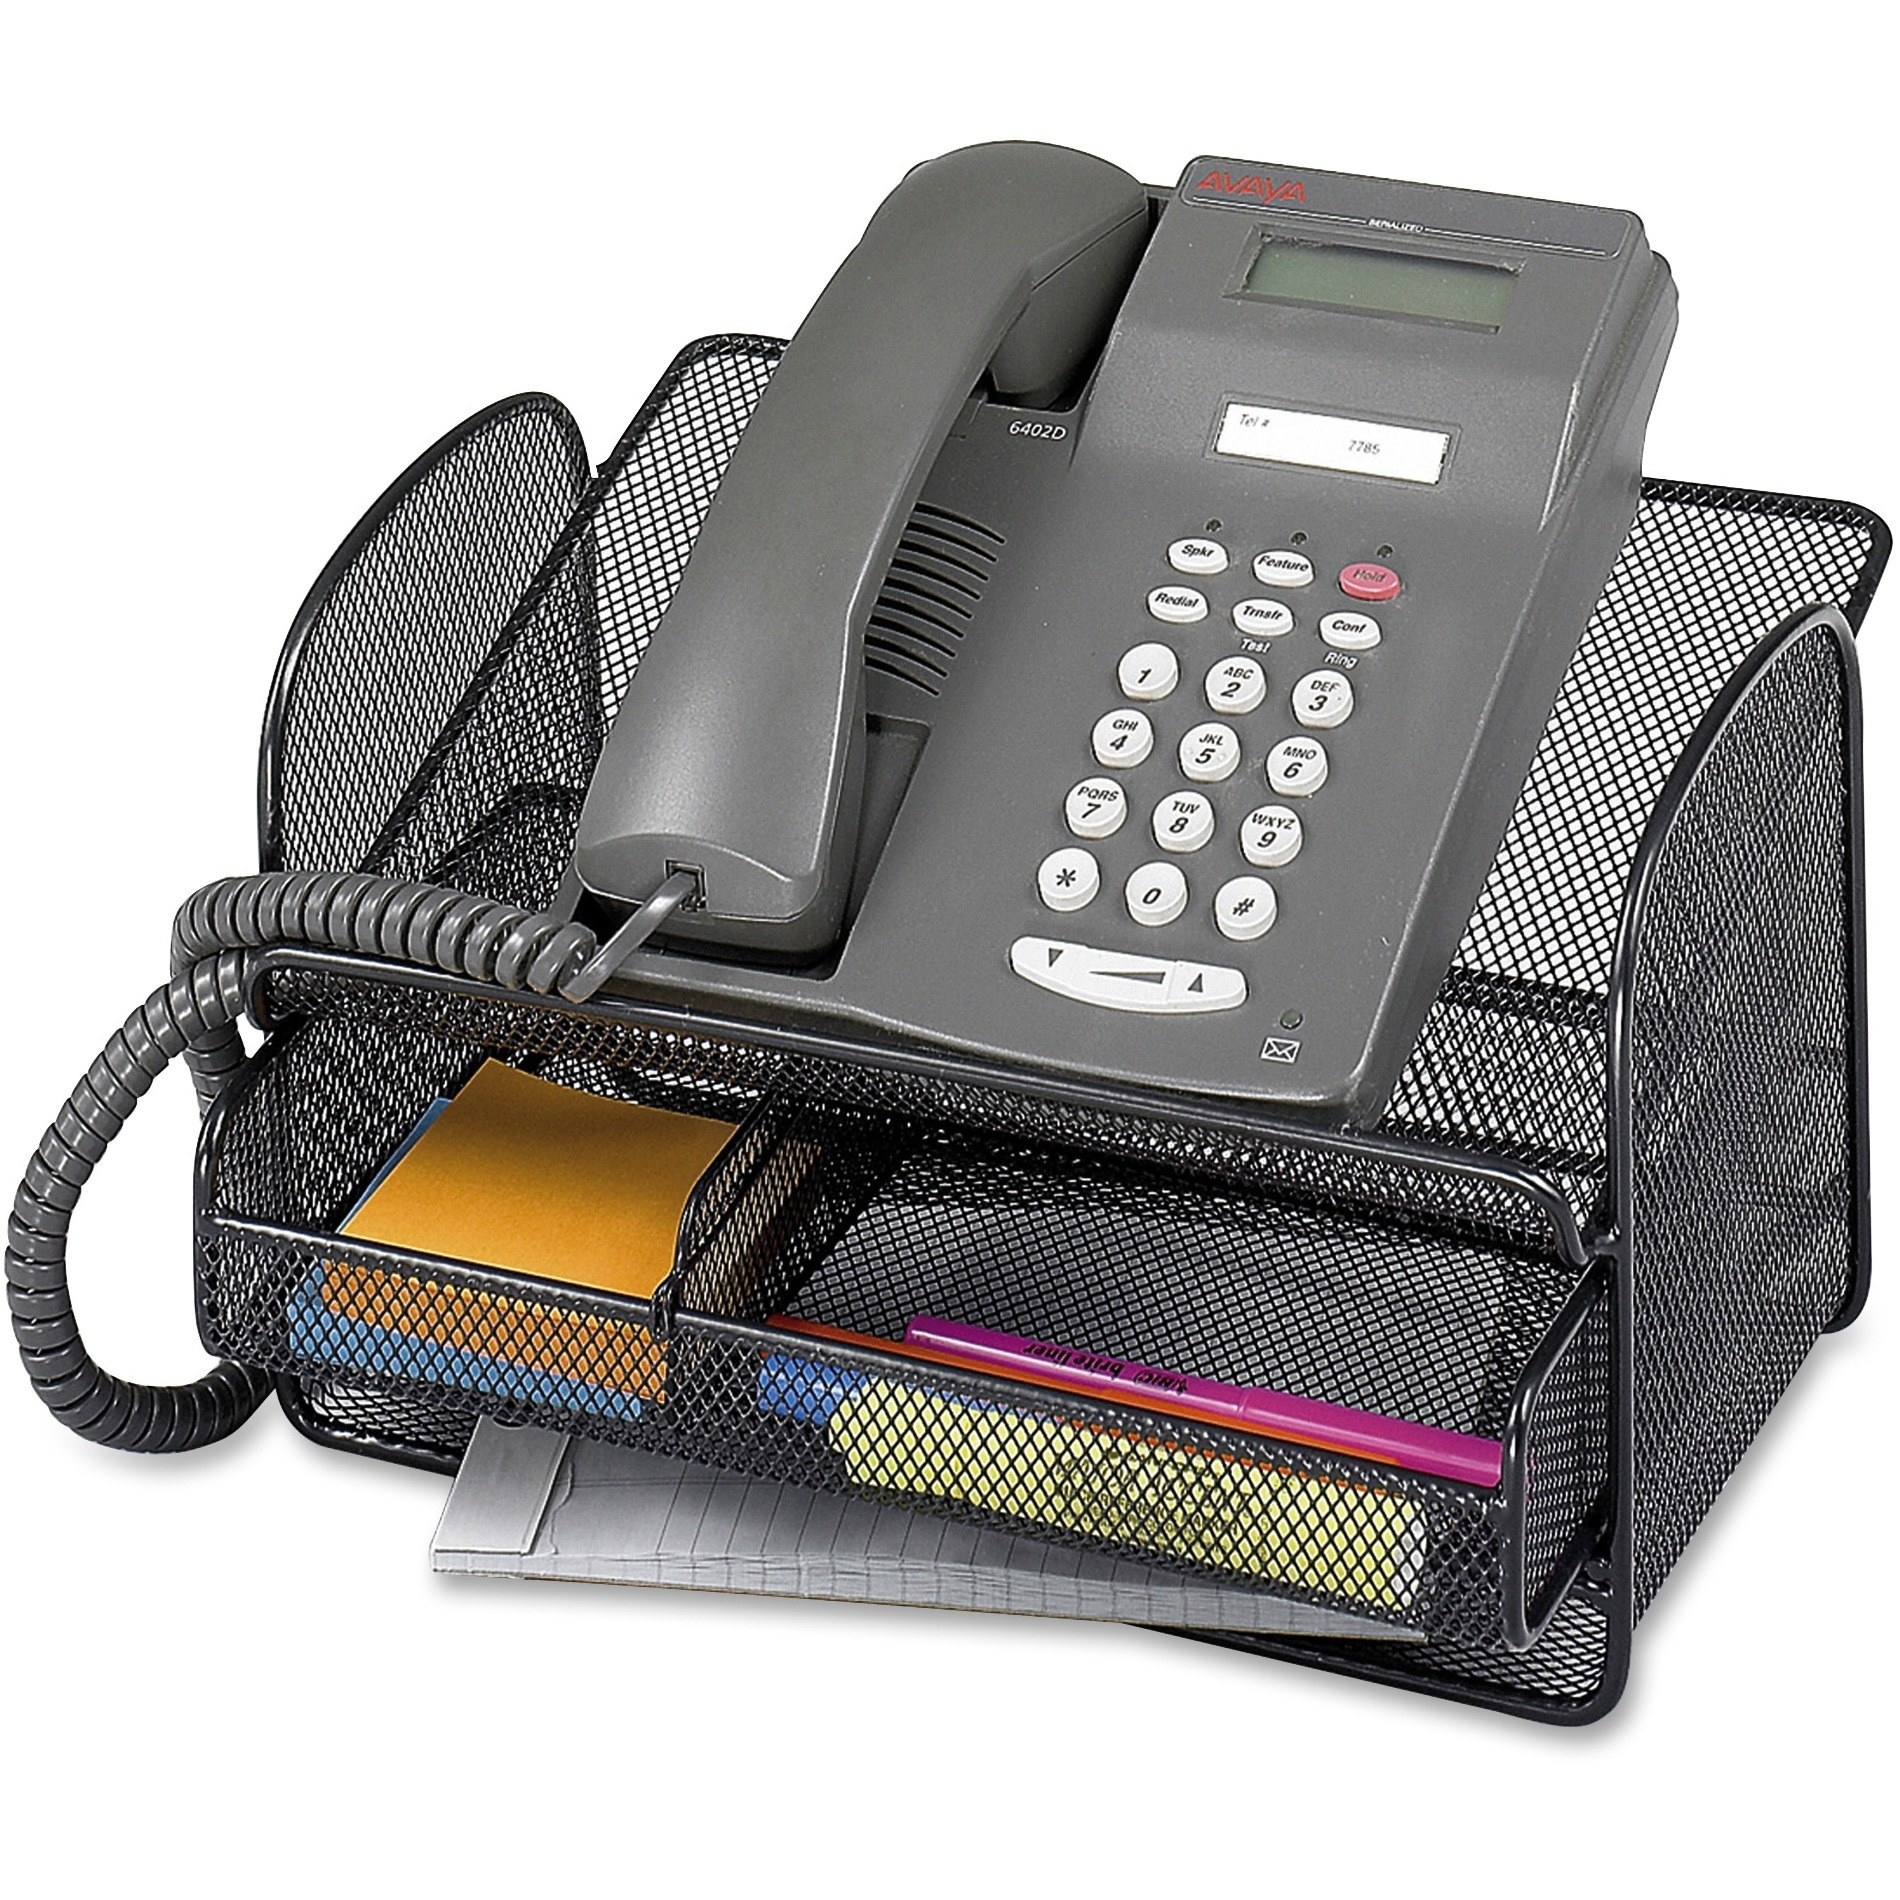 The black mesh telephone stand